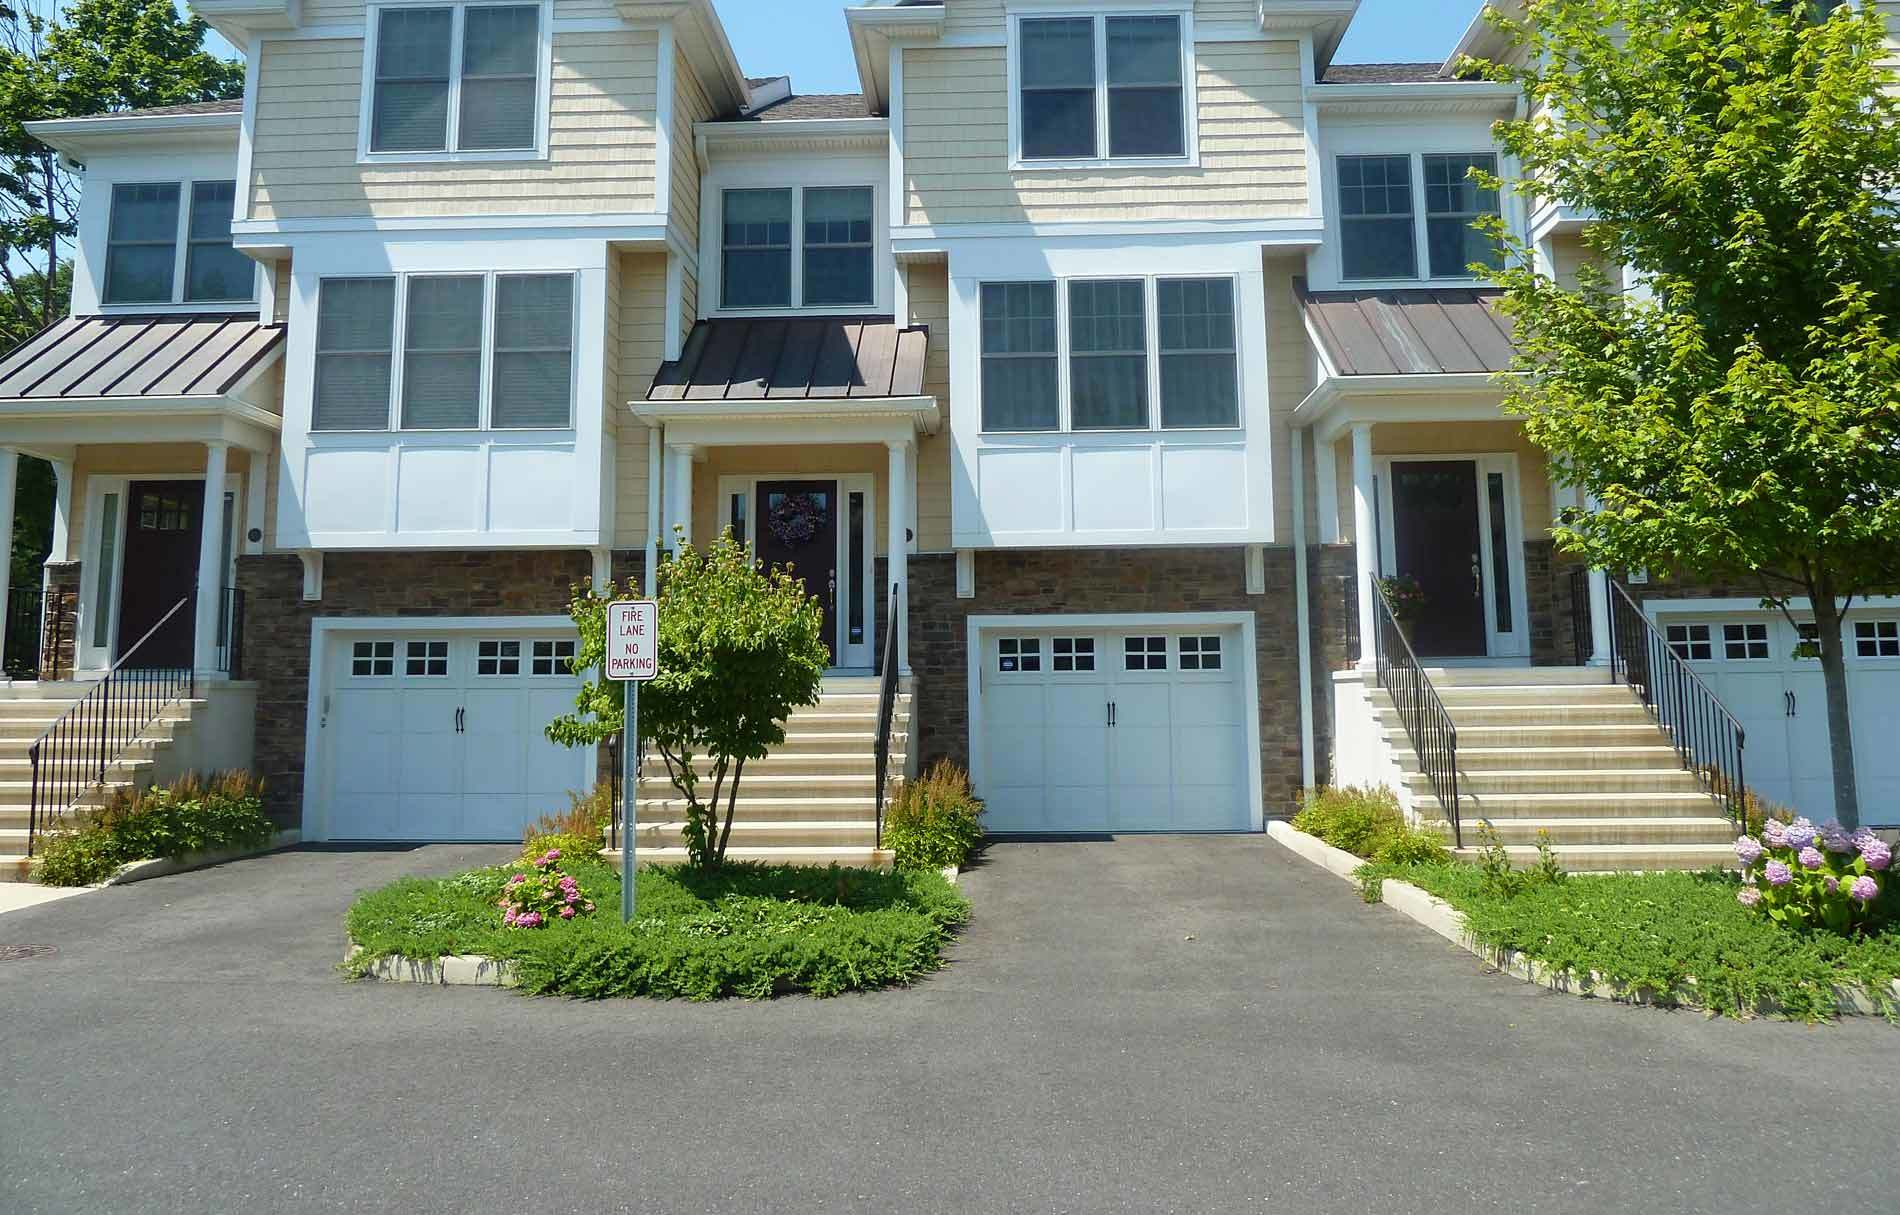 Townhouses for Sale in Westport CT 06880